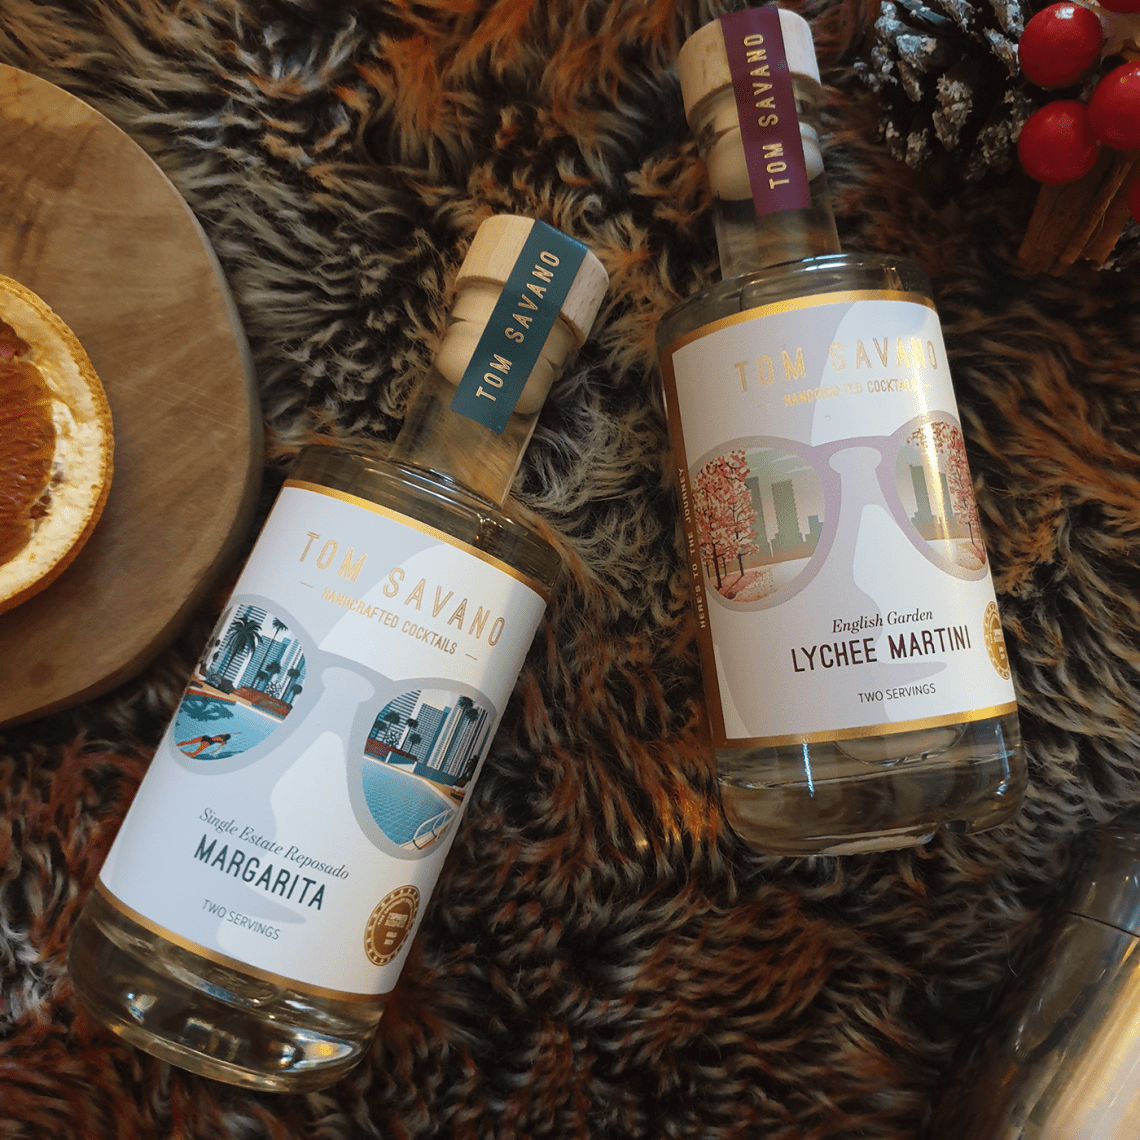 23 Of The Best Alcohol Gifts For This Christmas - Female Original